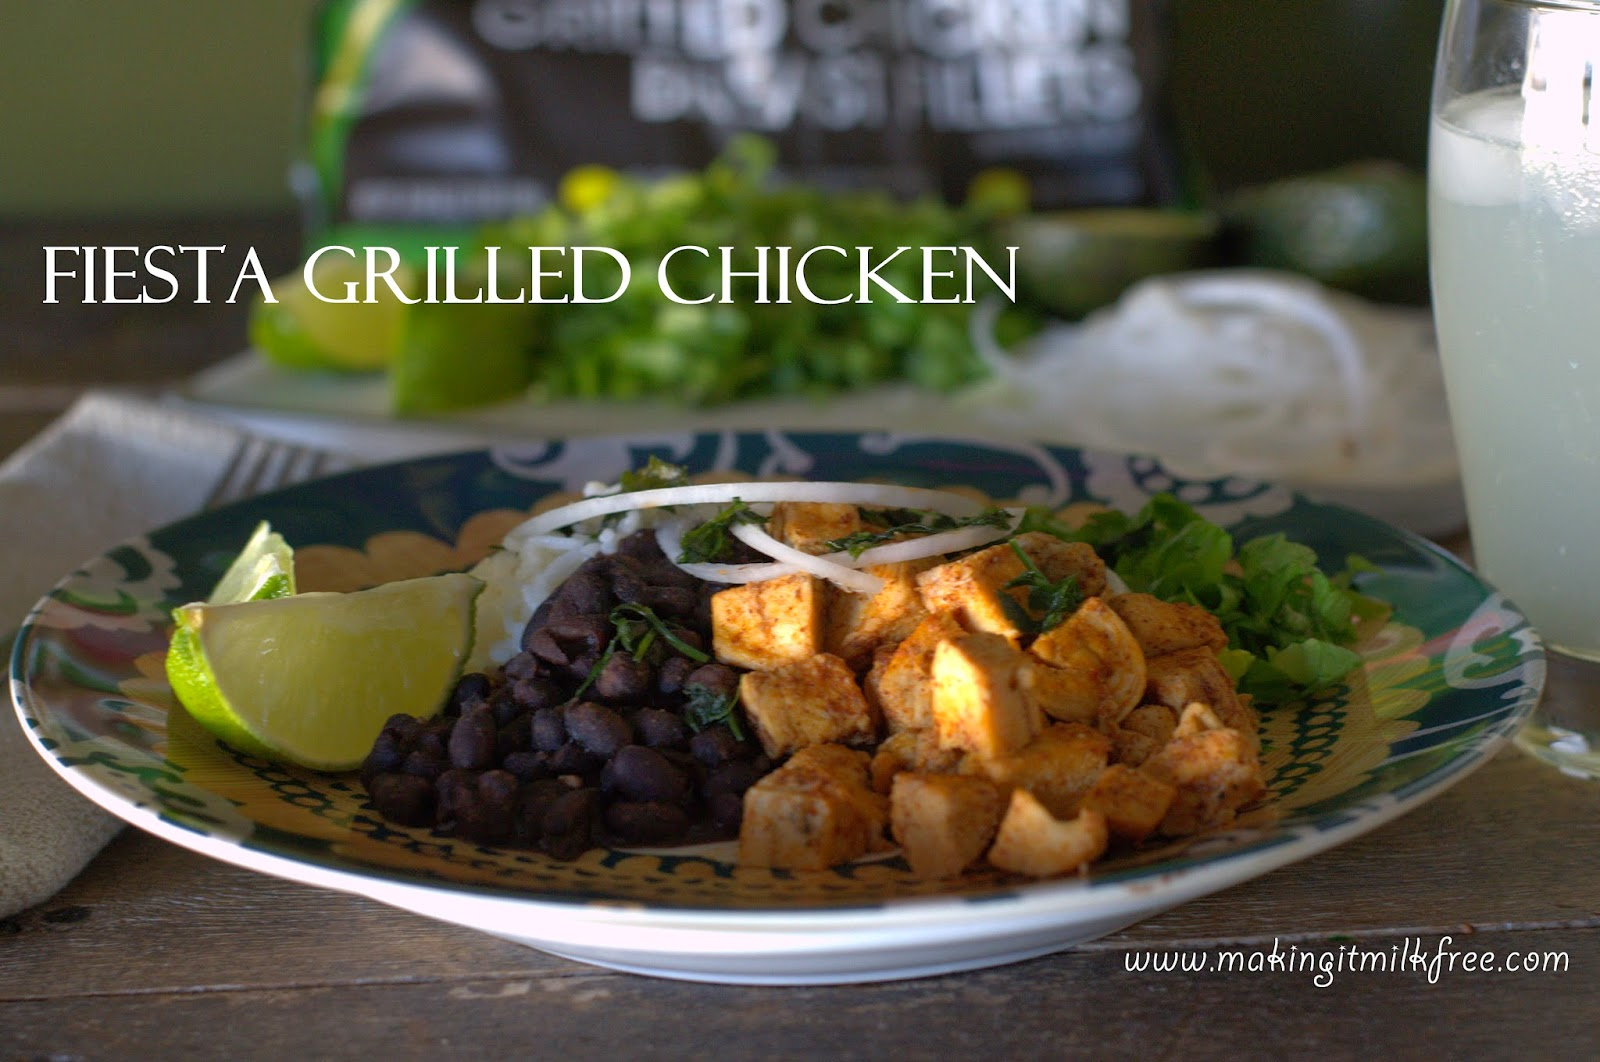 gluten-free chicken, gluten-free recipes, gluten-free cooking, #CookItGF, #CollectiveBias, #shop